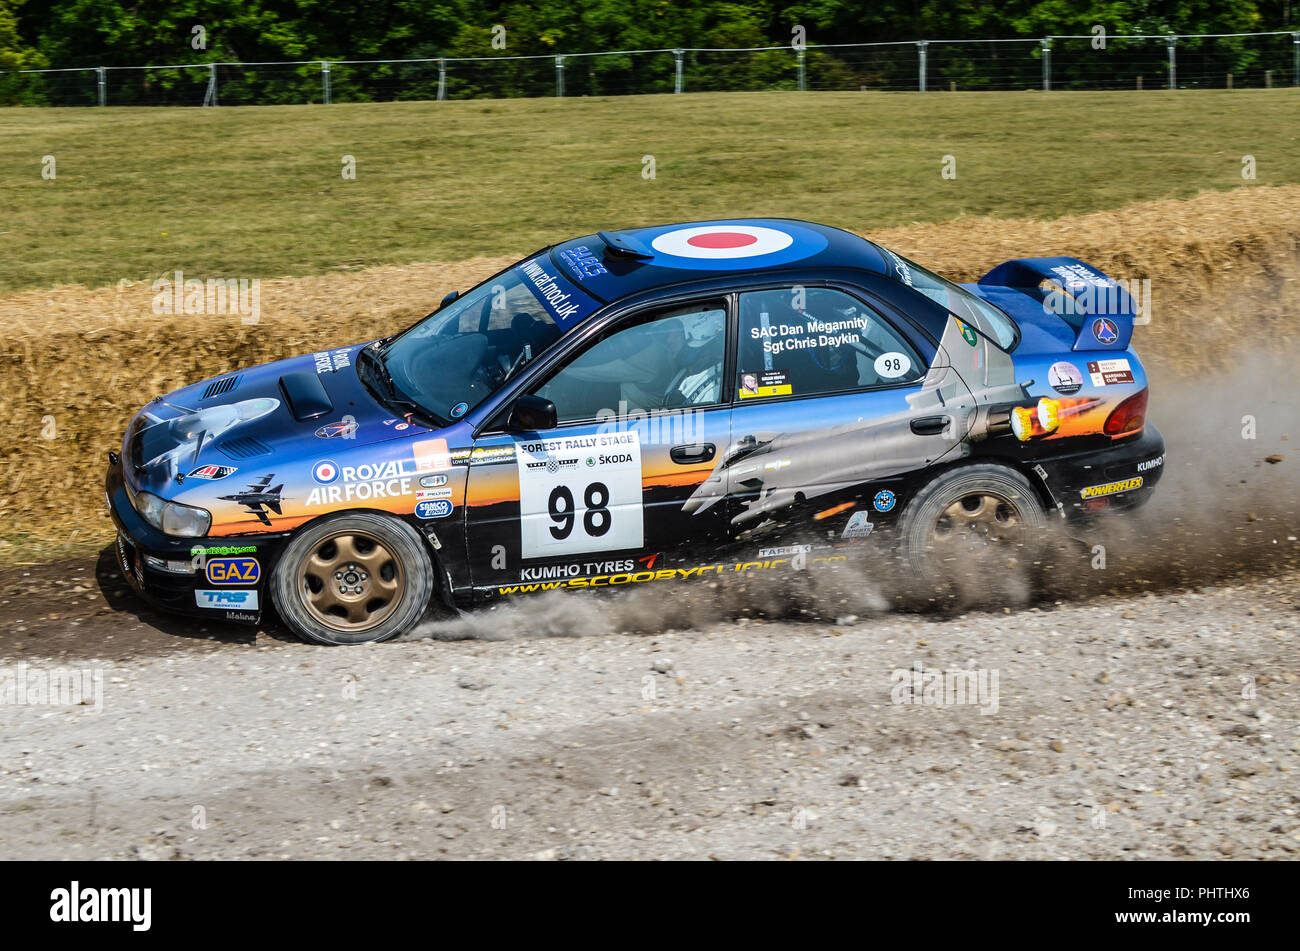 RAF Royal Air Force Subaru Impreza rally car racing on the special stage at the Goodwood Festival of Speed. Driven by Dan Megannity and Chris Daykin - Stock Image